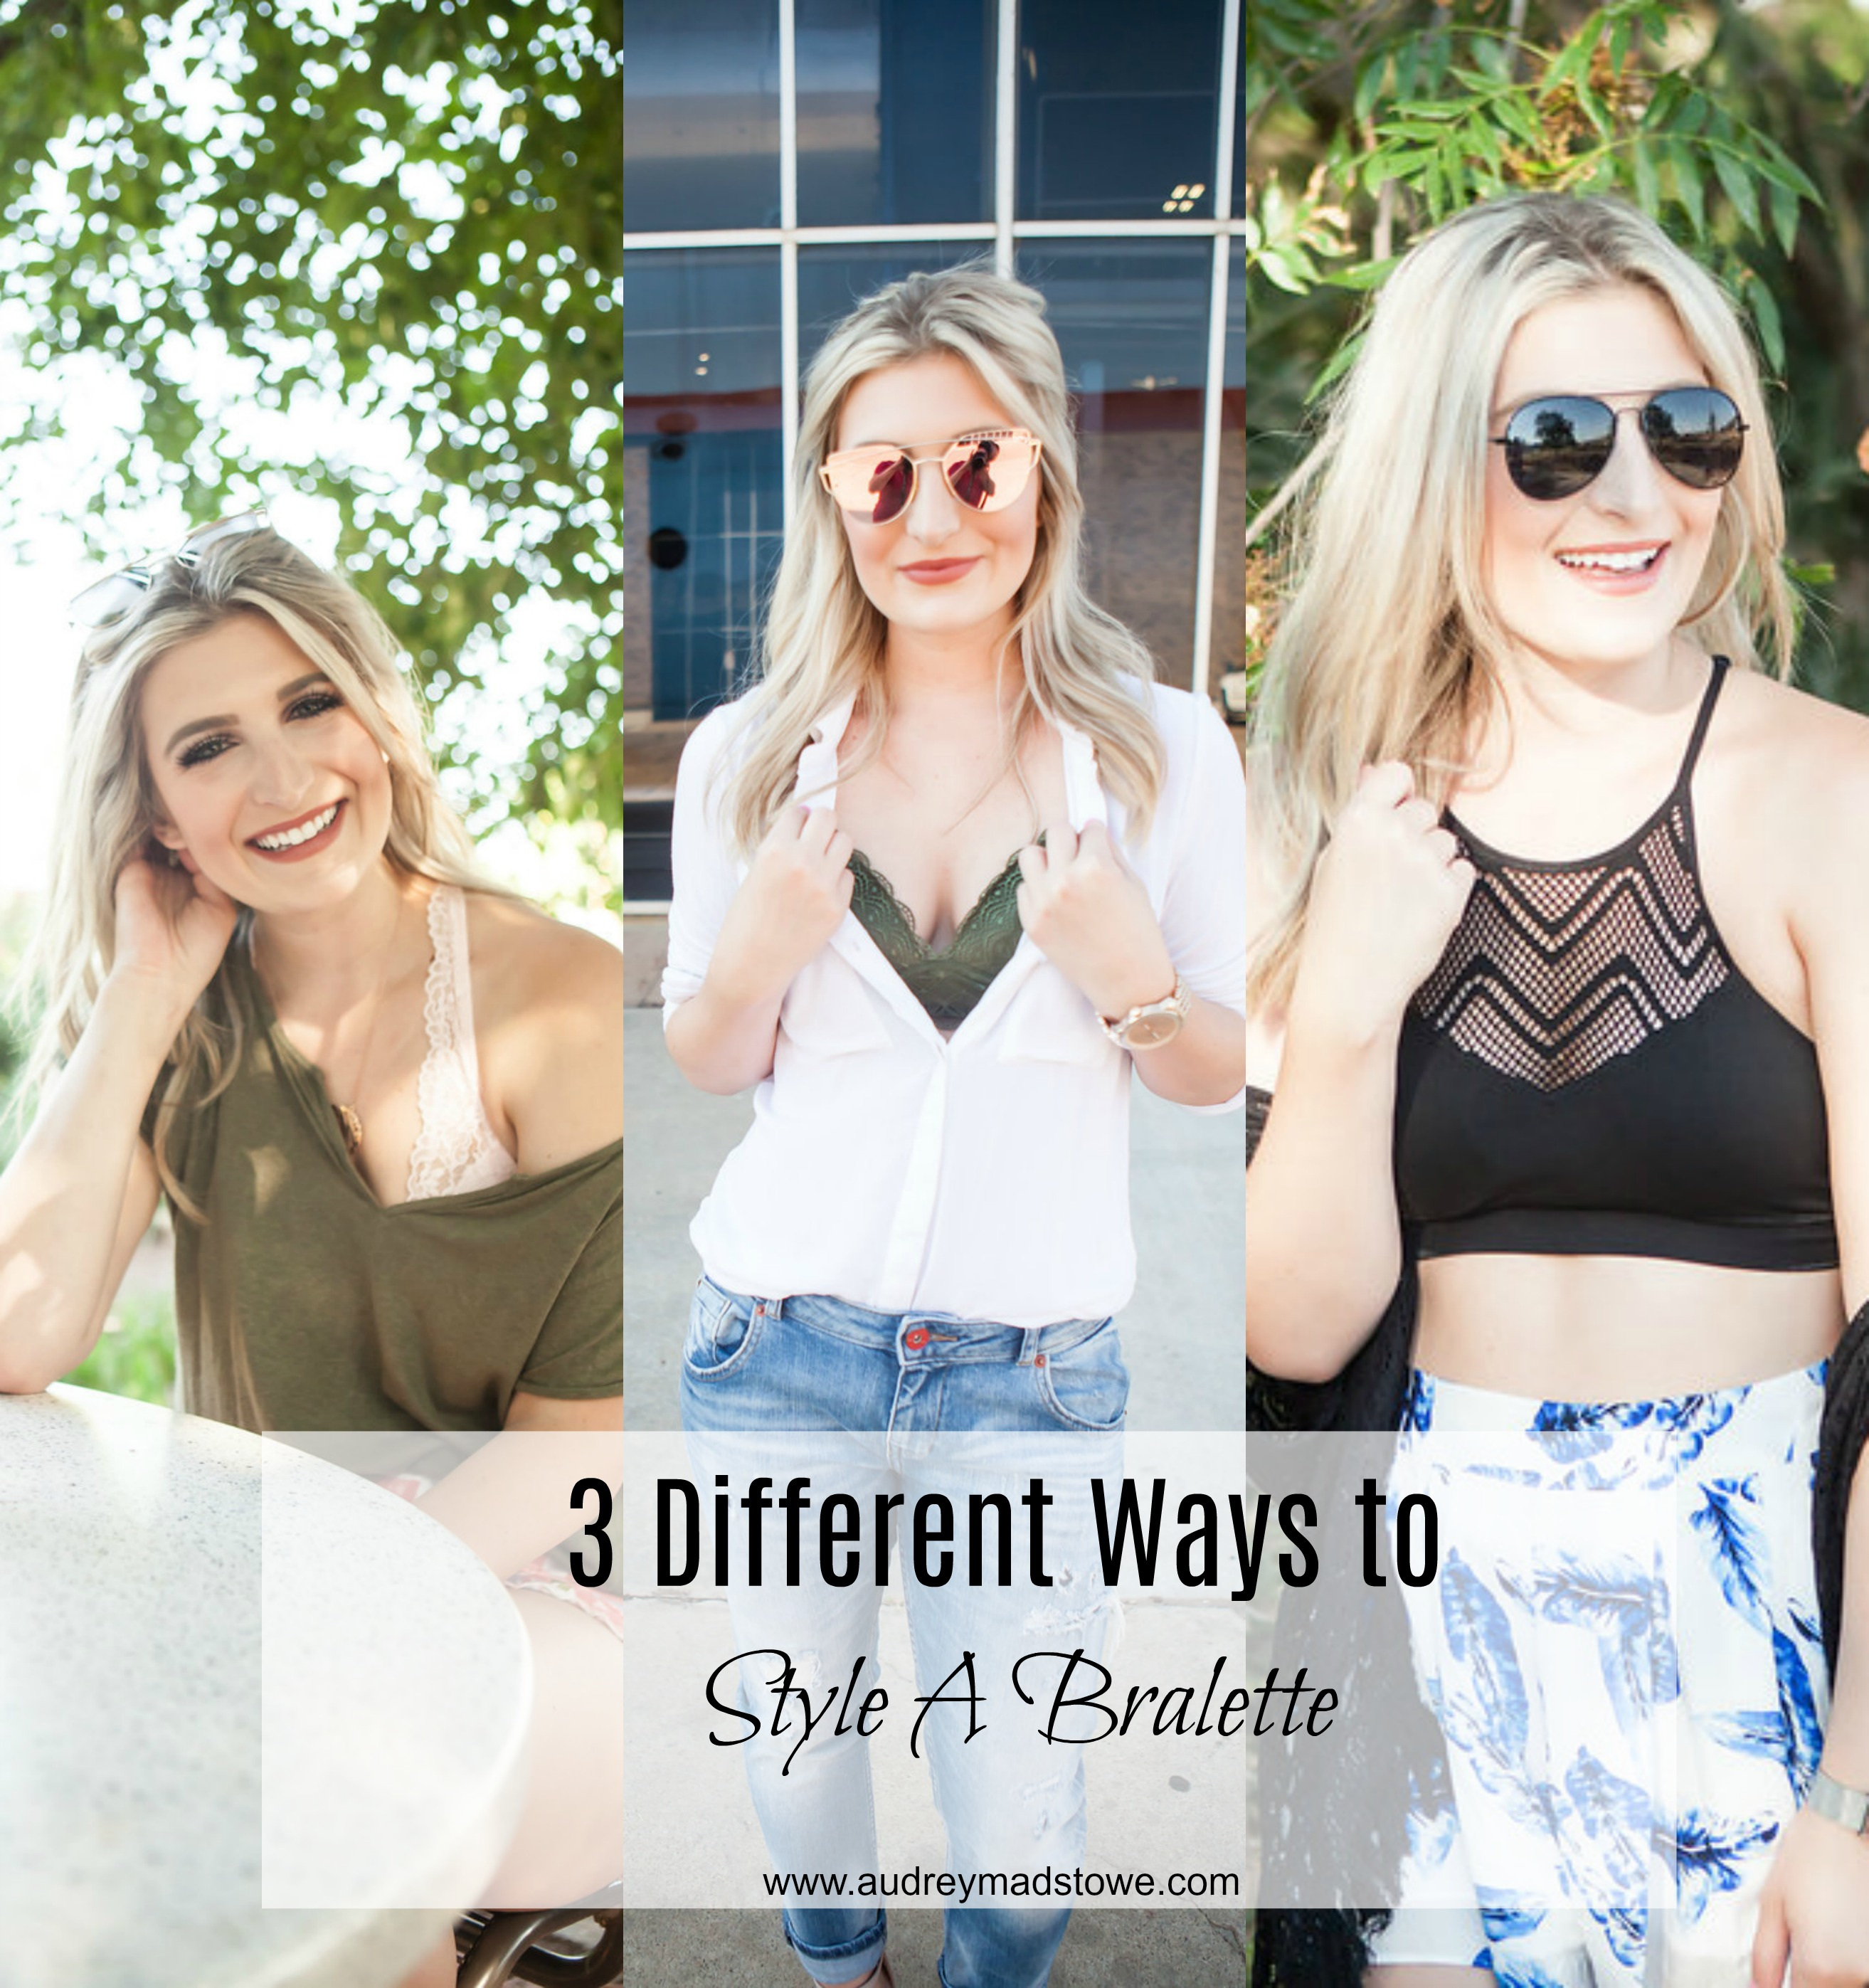 3 Ways to Style A Bralette with Kohls | Summer Style | lifestyle and fashion college blogger Audrey Madison Stowe